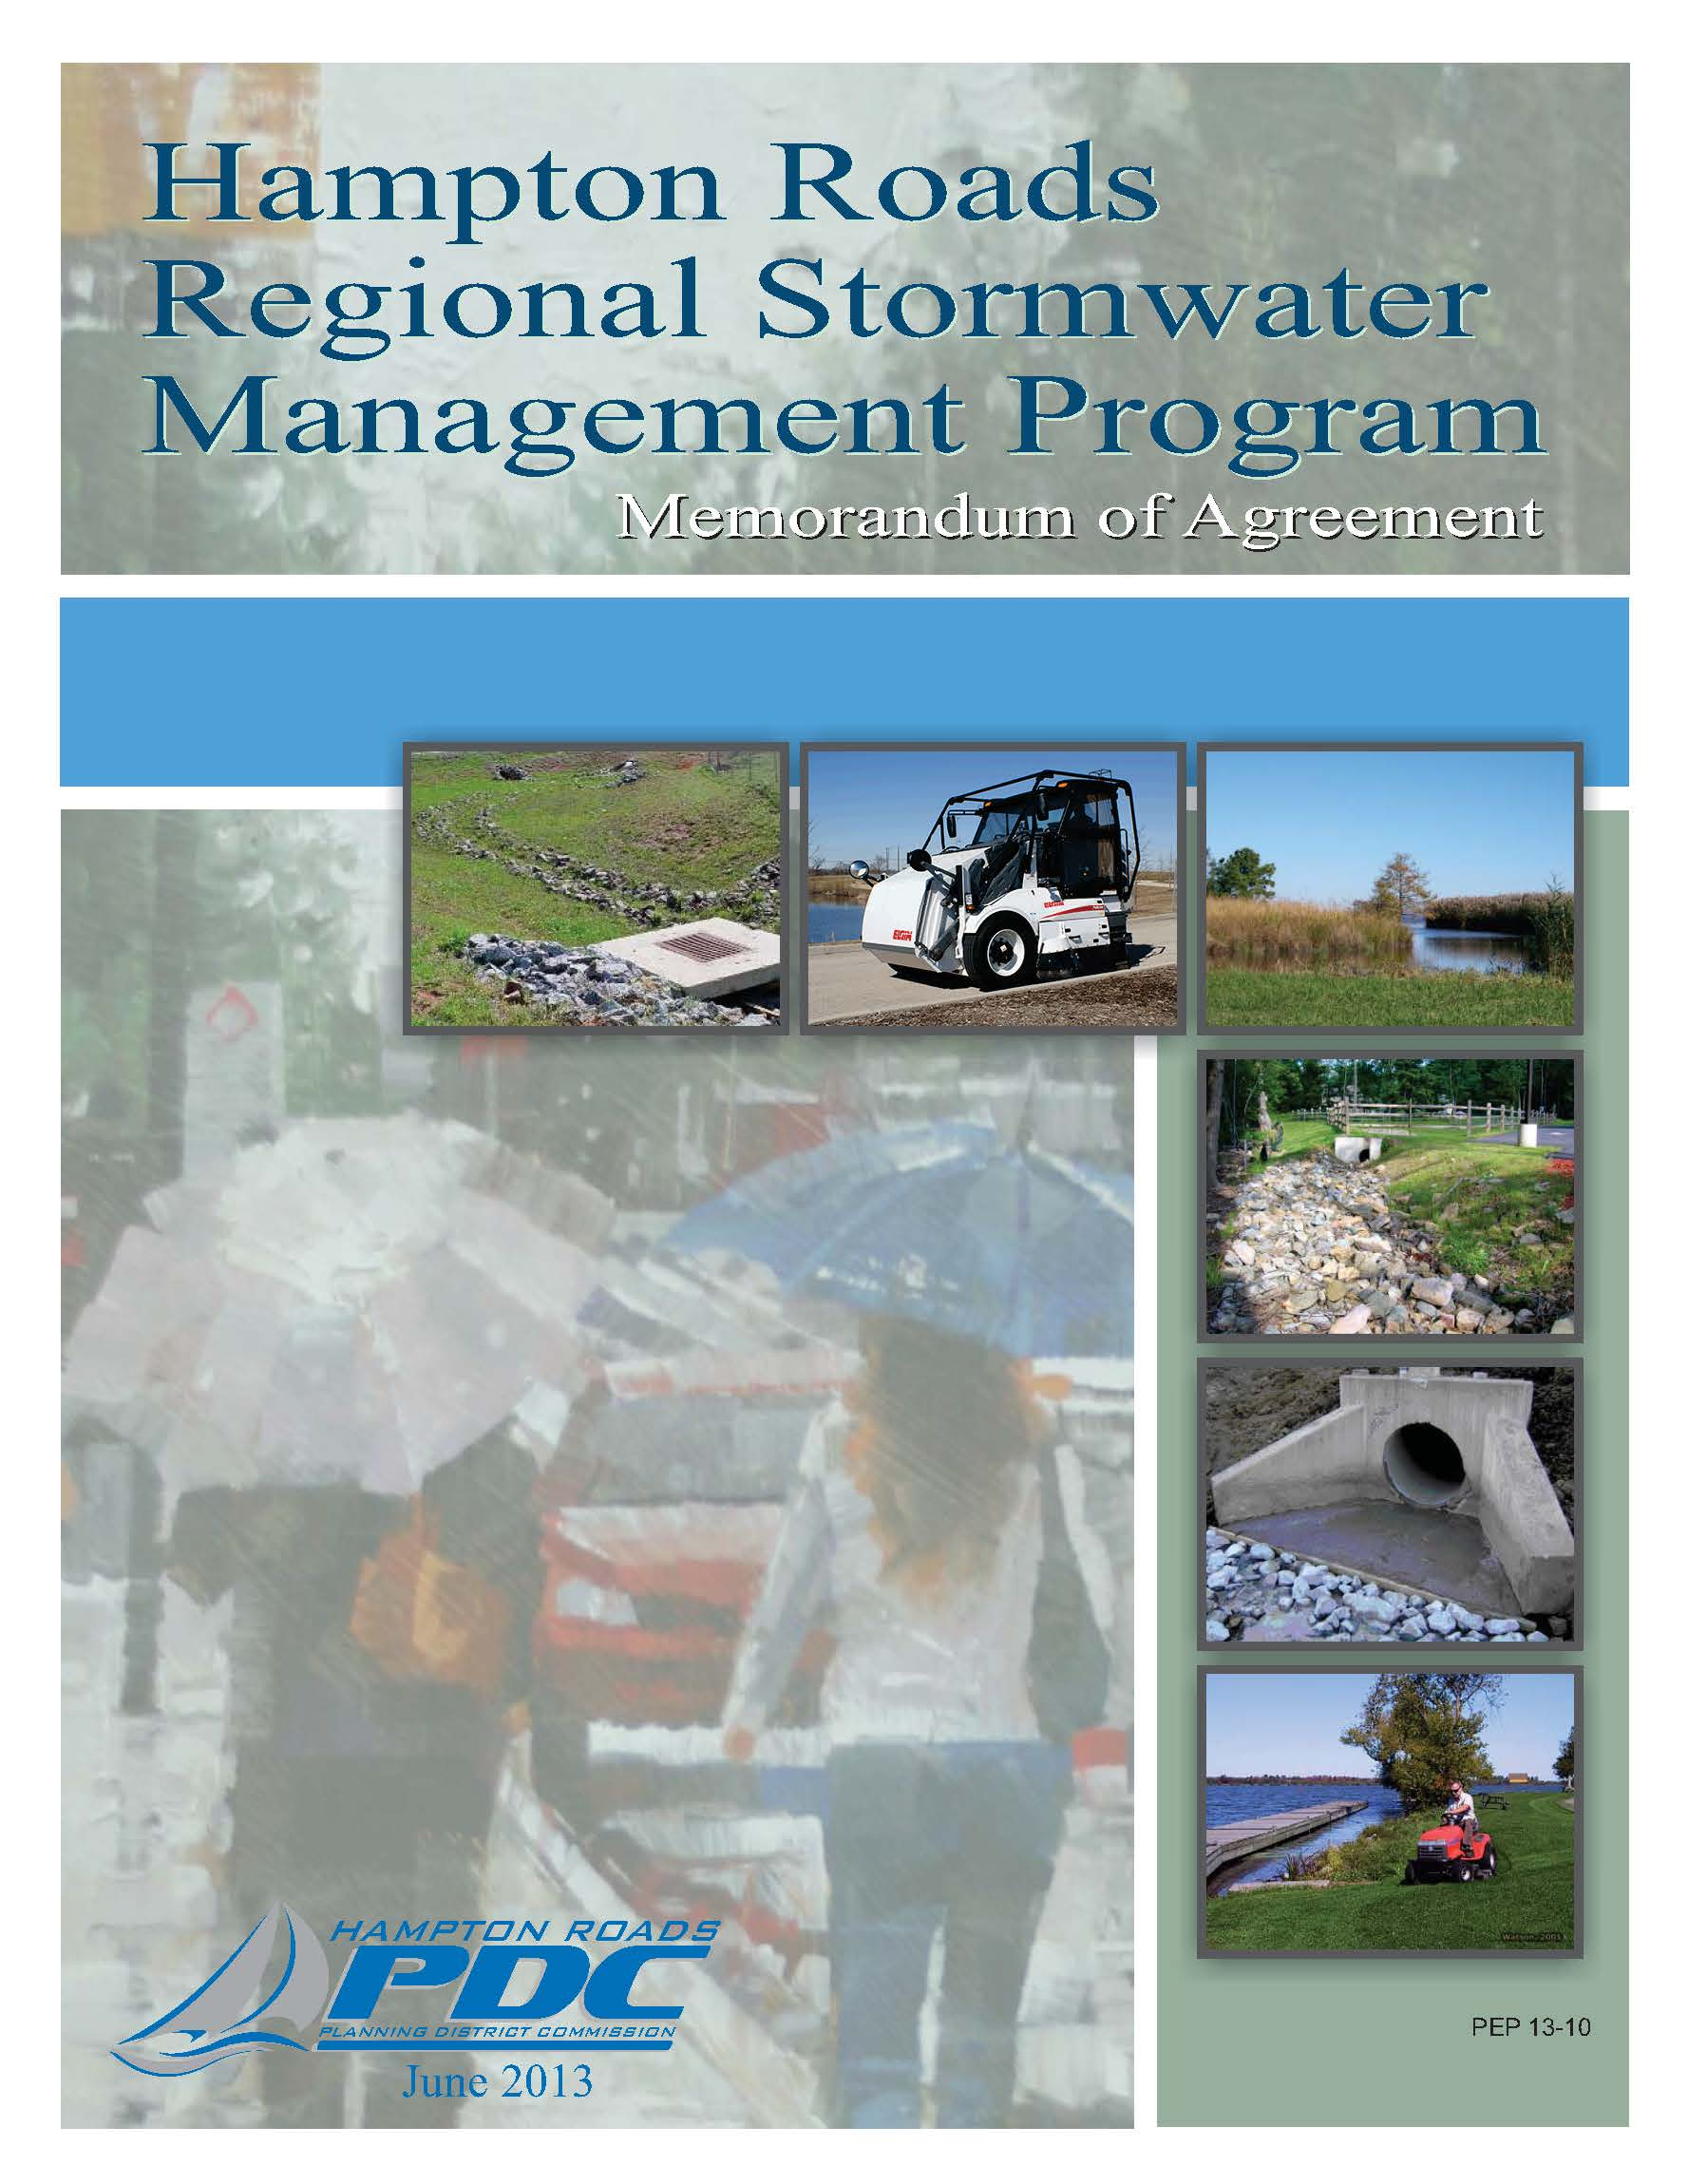 Cover Image 2013 Hampon Roads Regional Stormwater Management Program MOA